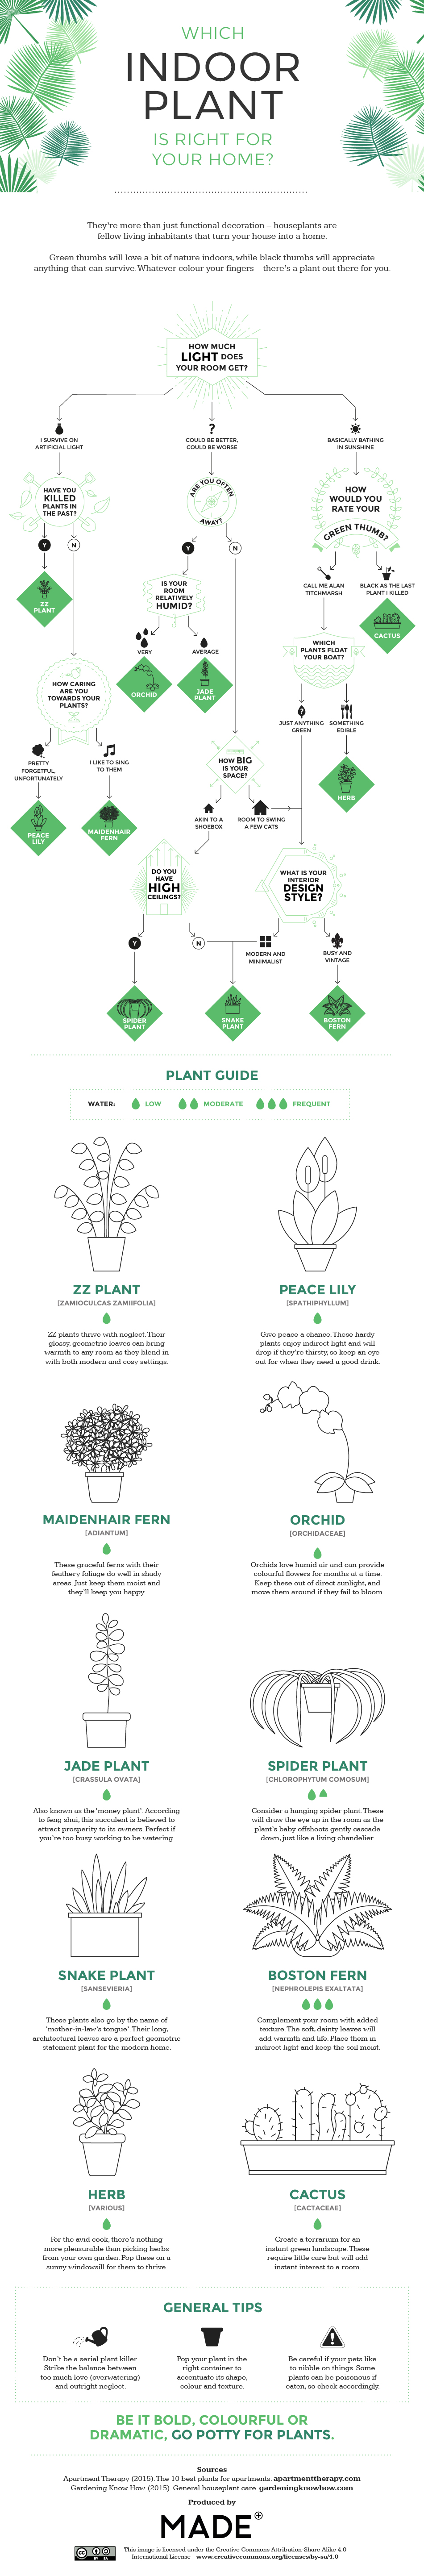 Which indoor plant is the right - infographic by Made